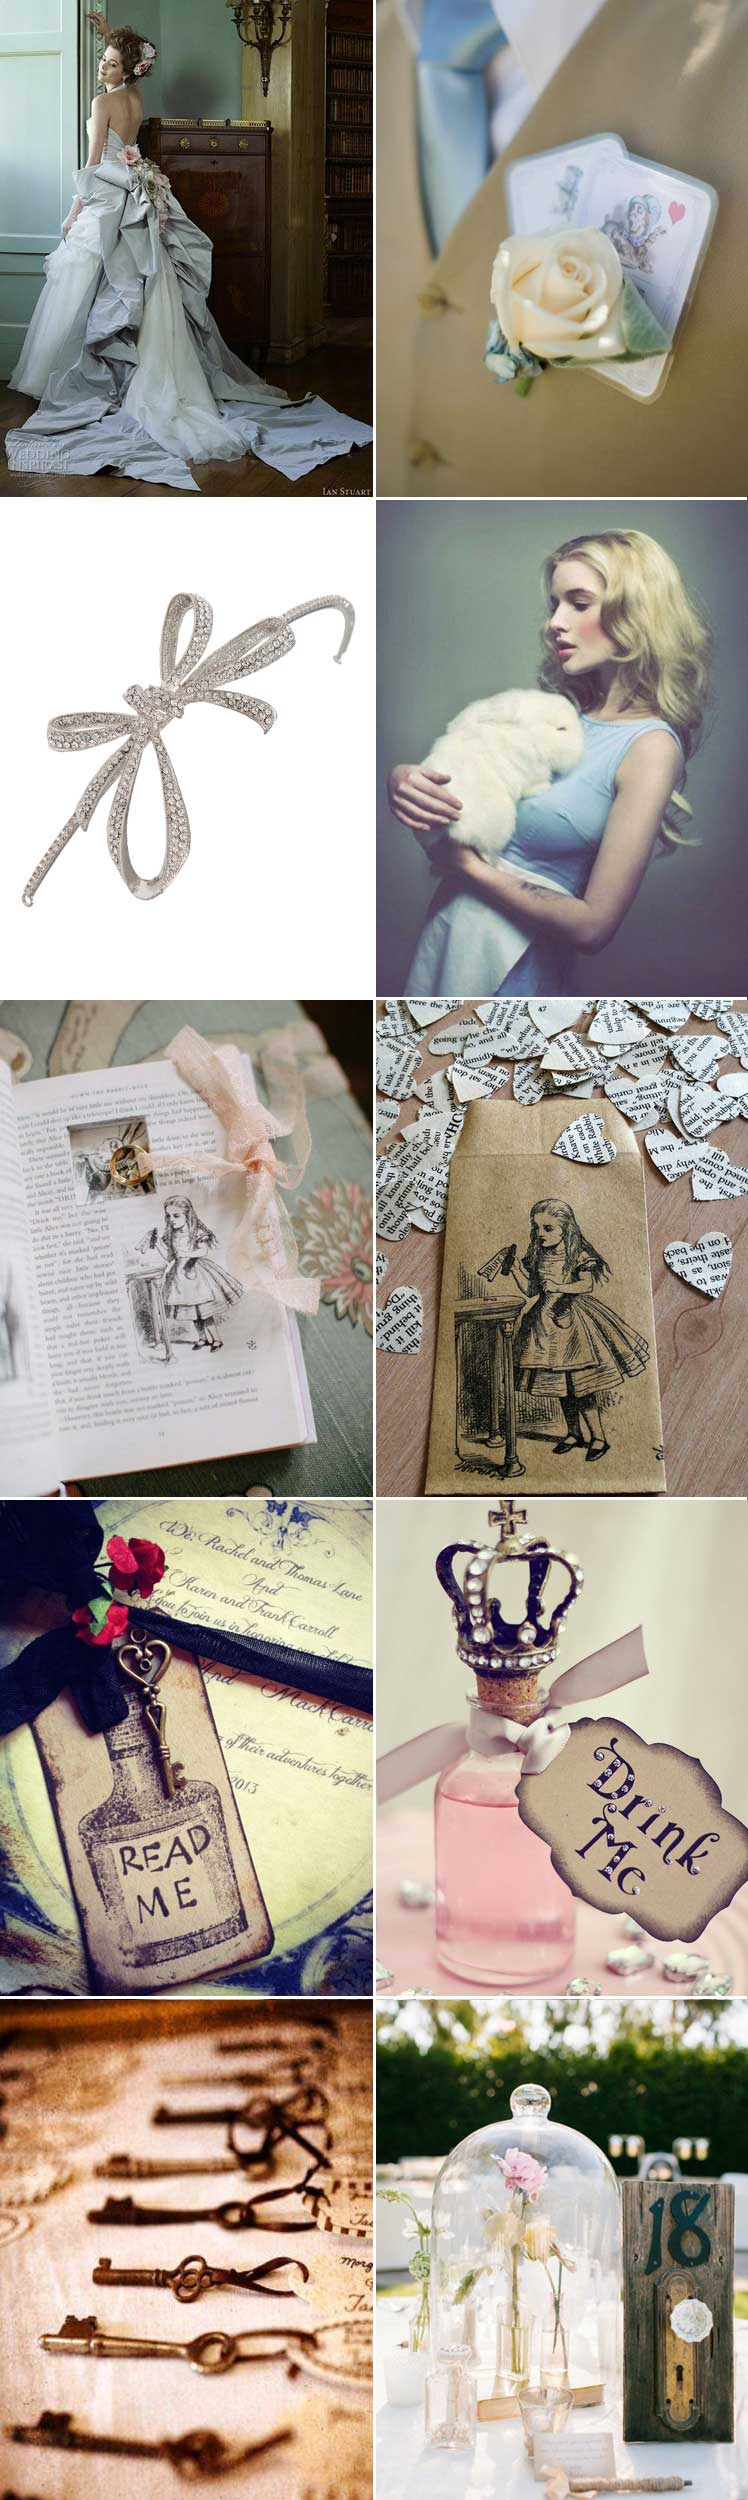 Alice in Wonderland wedding theme ideas